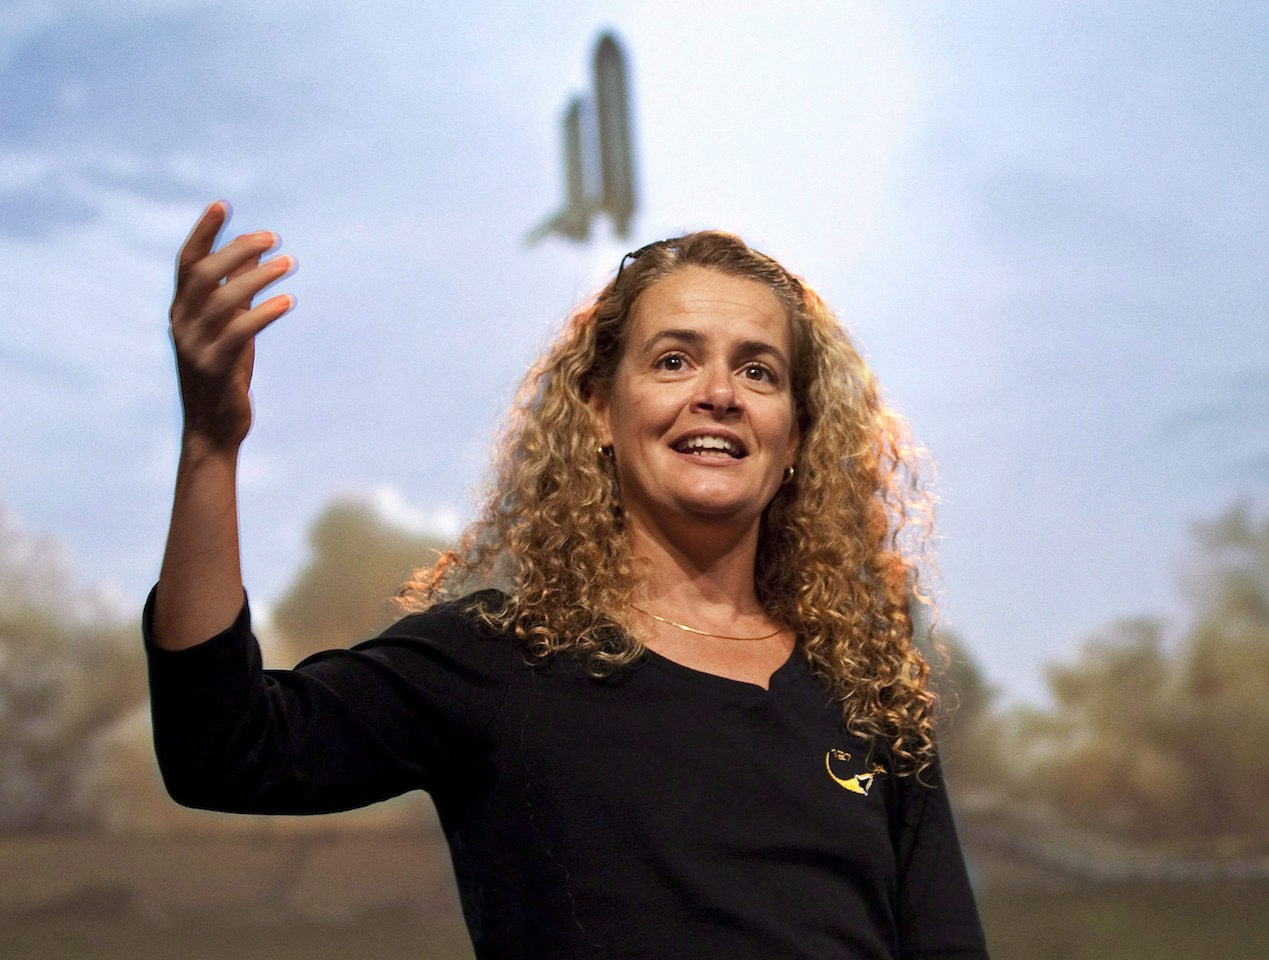 Canadian astronaut Julie Payette describes her mission to the International Space Station with a photograph in the background of the space shuttle with her in it during lift off on Friday August 28, 2009 in Longueuil, Que. The federal government is set to reveal Canada's next governor general Thursday with an announcement outside the doors of the Senate. Sources are telling The Canadian Press and others that astronaut Julie Payette is among the top contenders. THE CANADIAN PRESS/Paul Chiasson